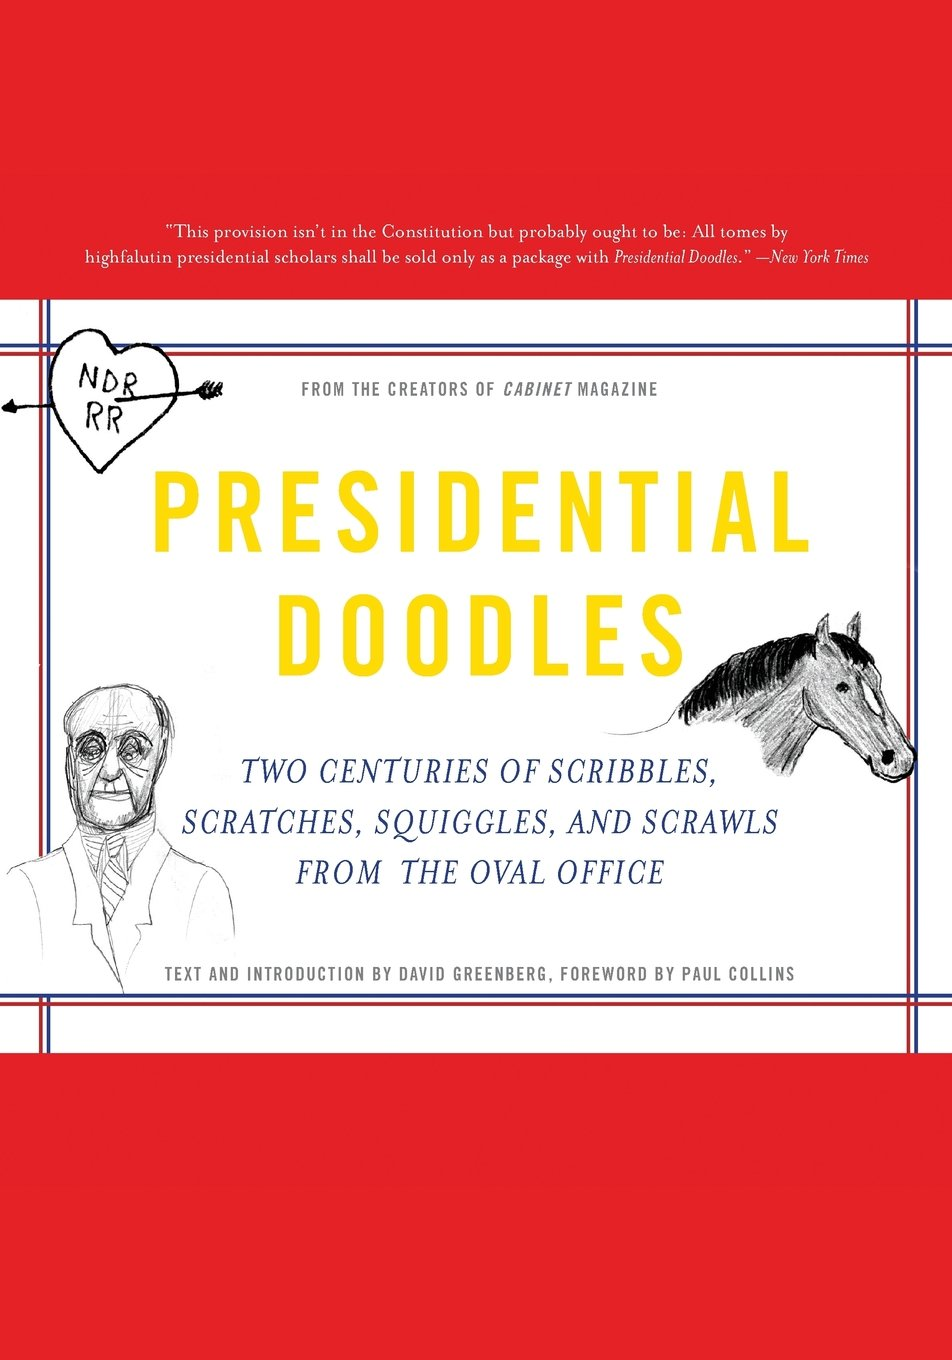 Download Presidential Doodles: Two Centuries of Scribbles, Scratches, Squiggles, and Scrawls from the Oval Office squiggles & scrawls from the Oval Office PDF